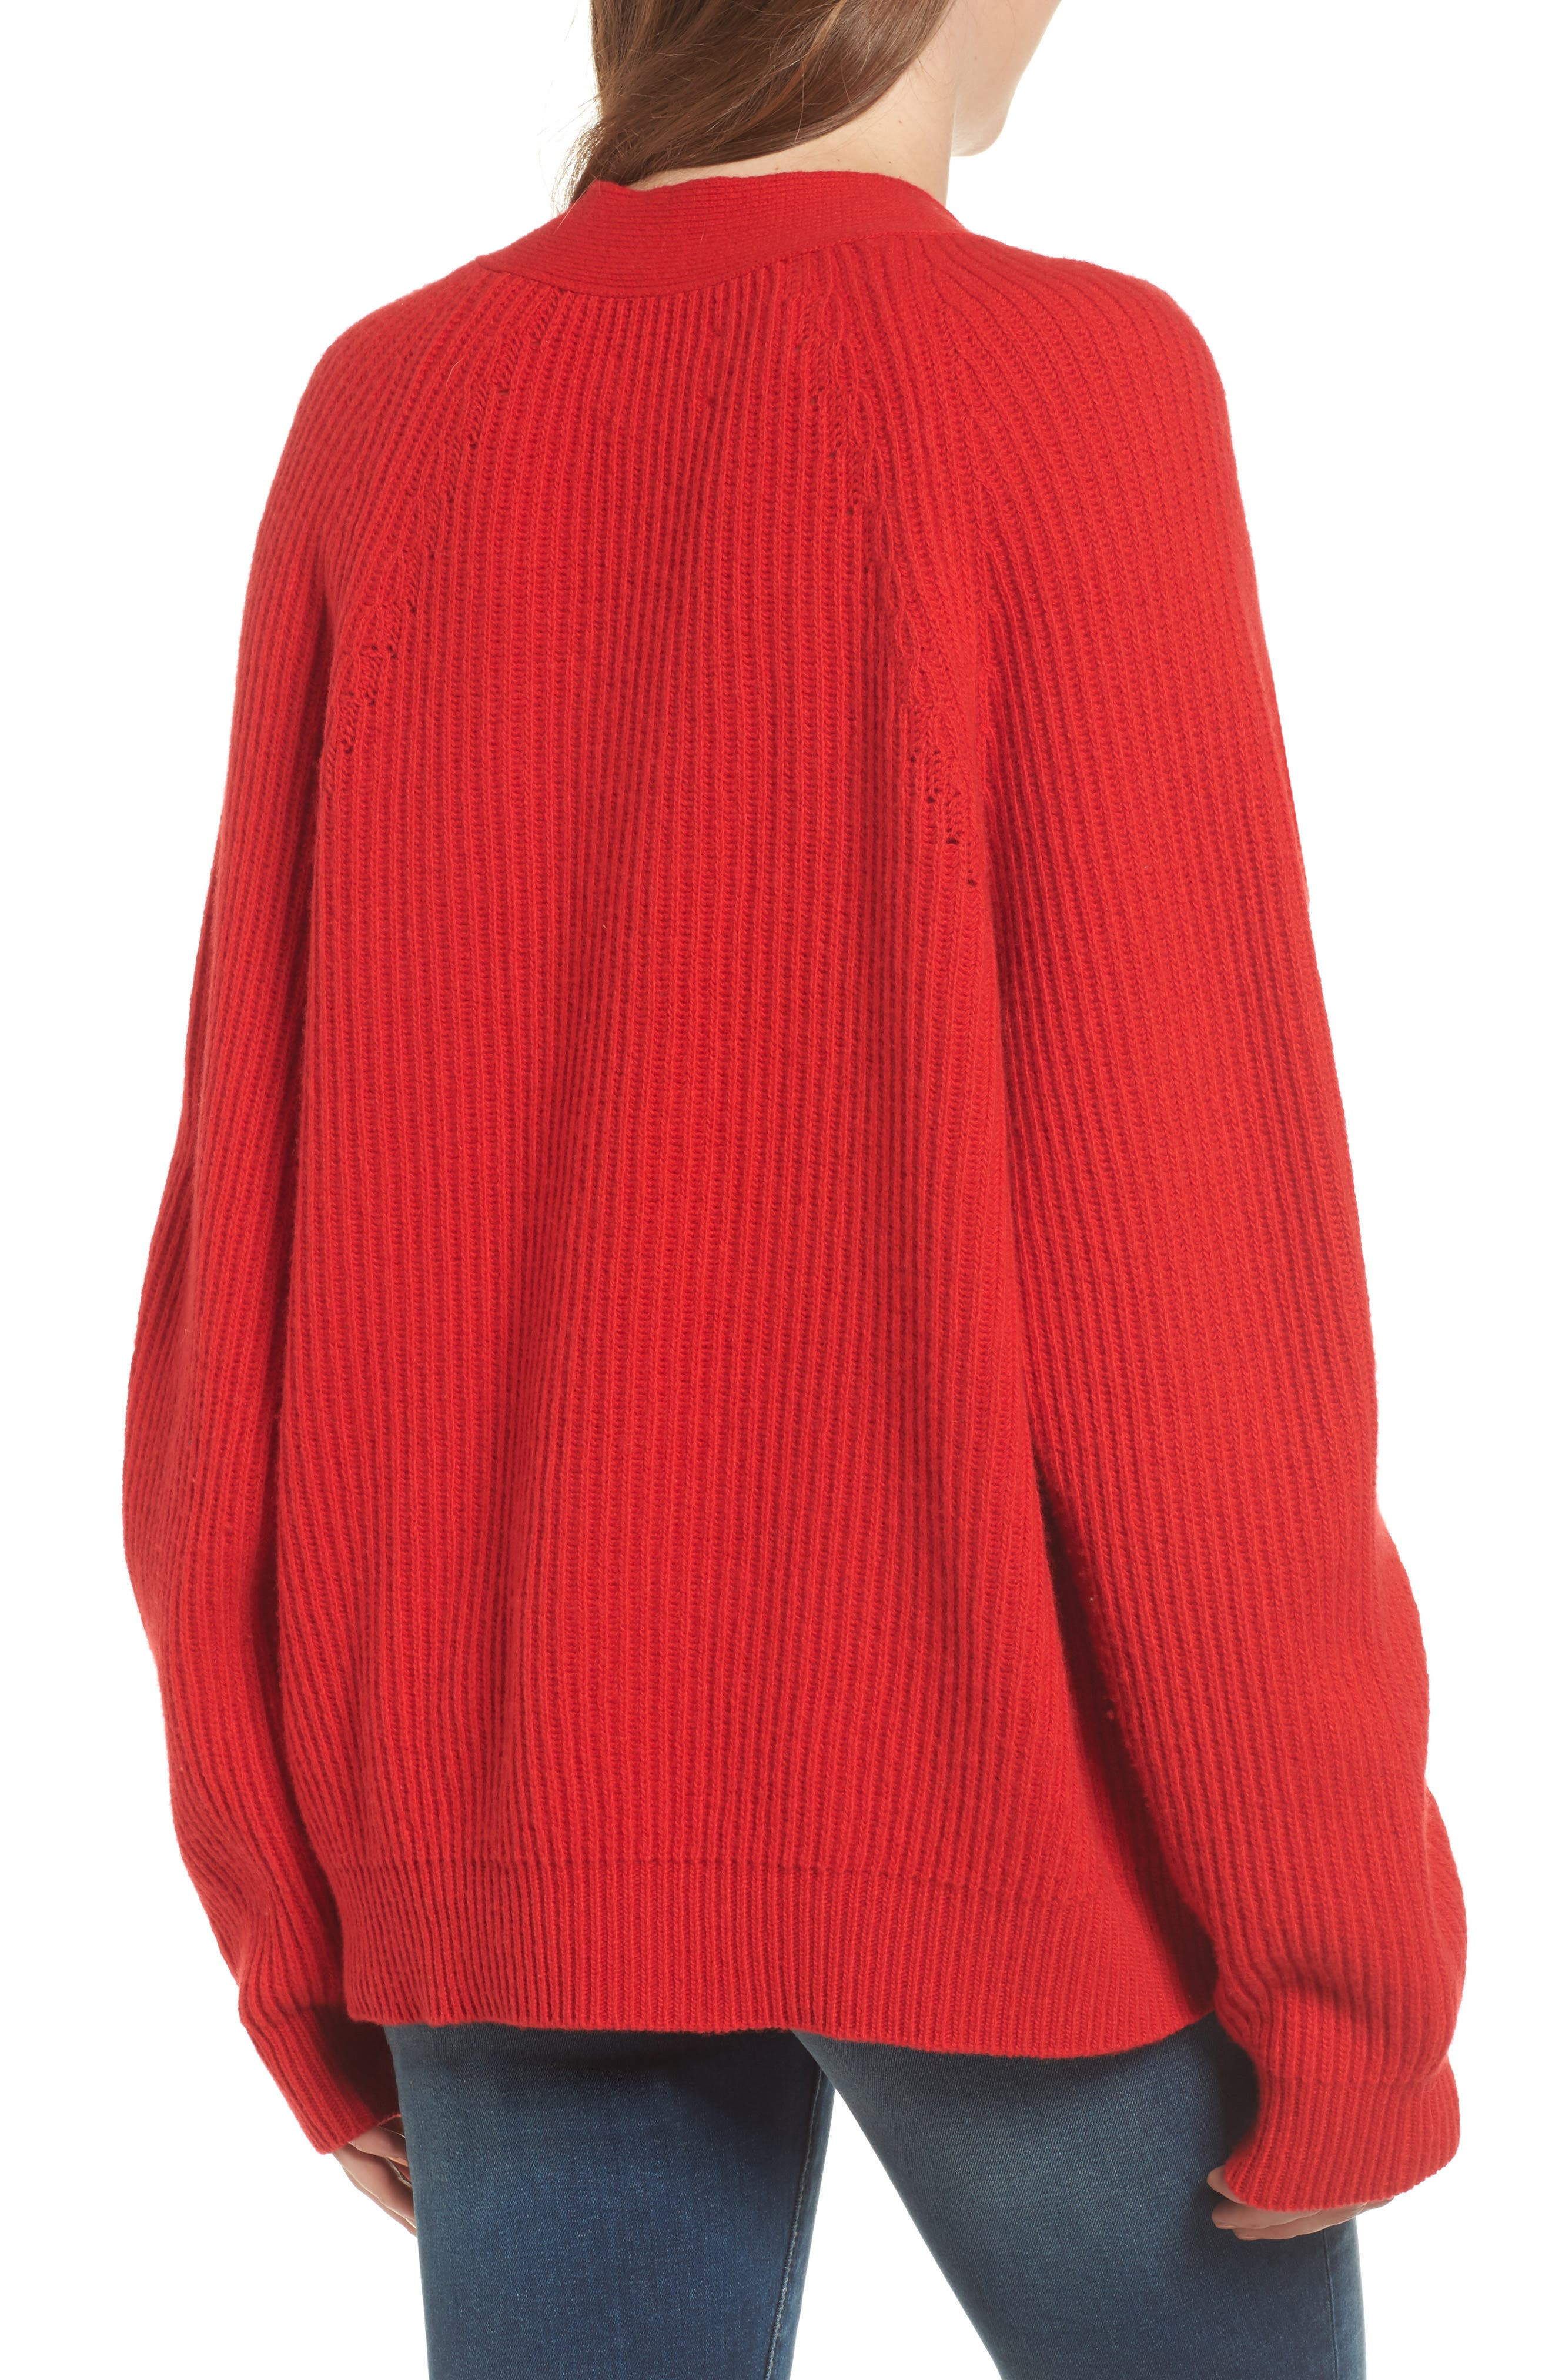 Alternate Image 2  - Zadig & Voltaire Kassy Wool Blend Sweater